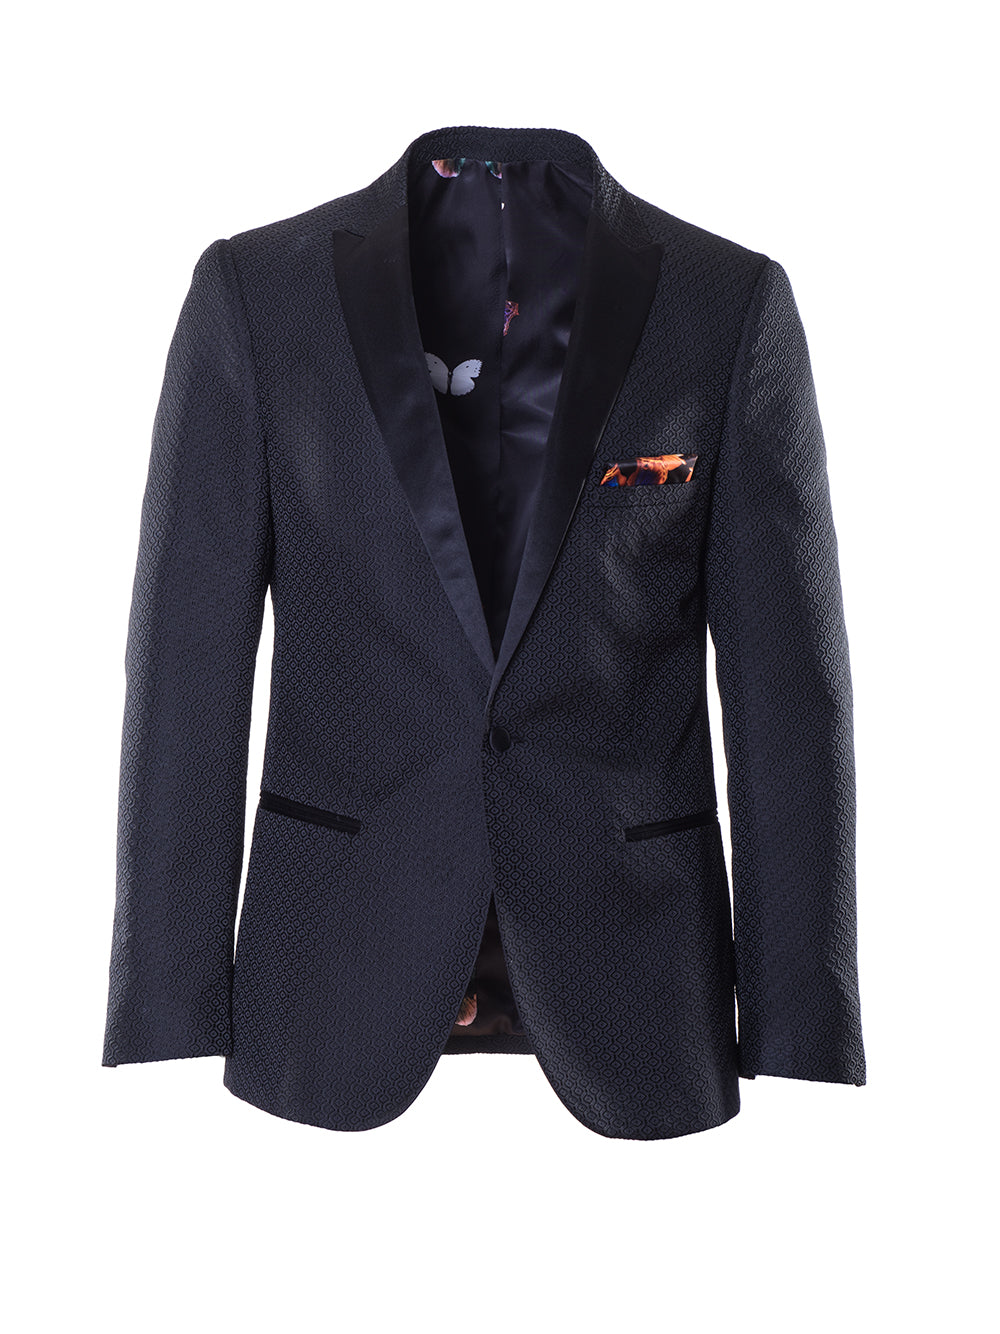 Grosvenor Peak Dinner Jacket - Black Jacquard